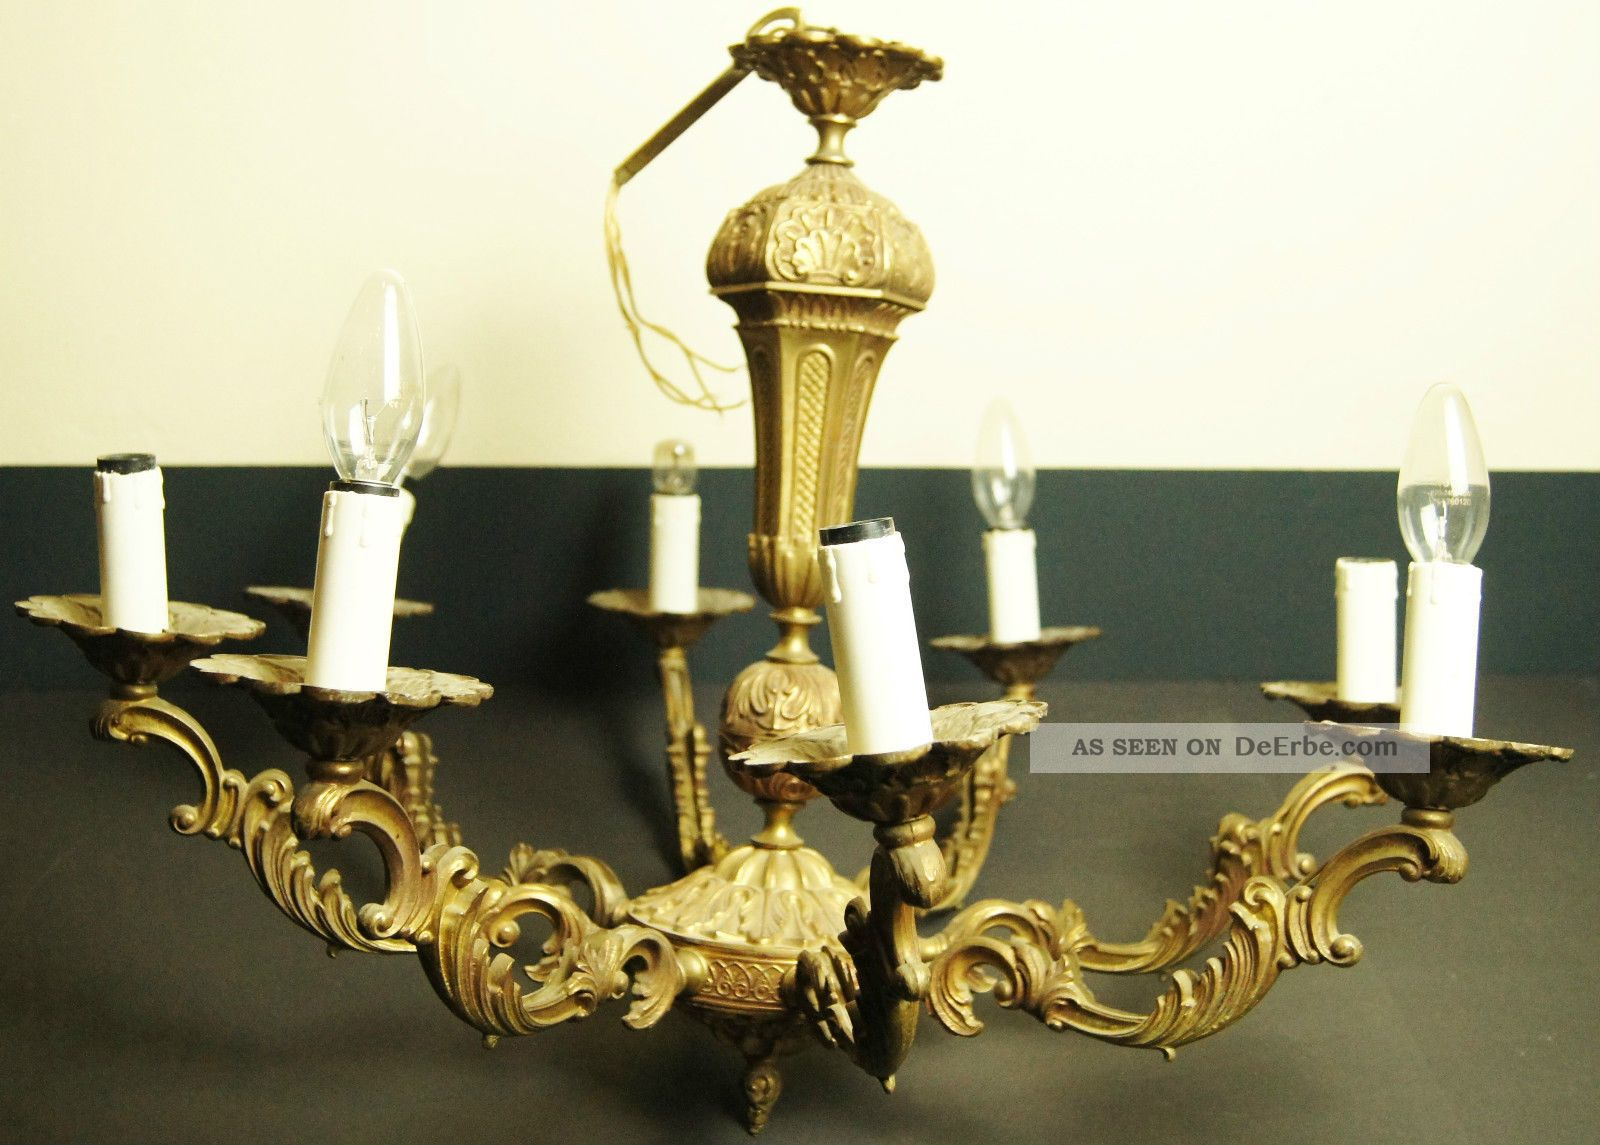 kronleuchter bronze 8 arm lampe l ster frankreich antik massiv. Black Bedroom Furniture Sets. Home Design Ideas